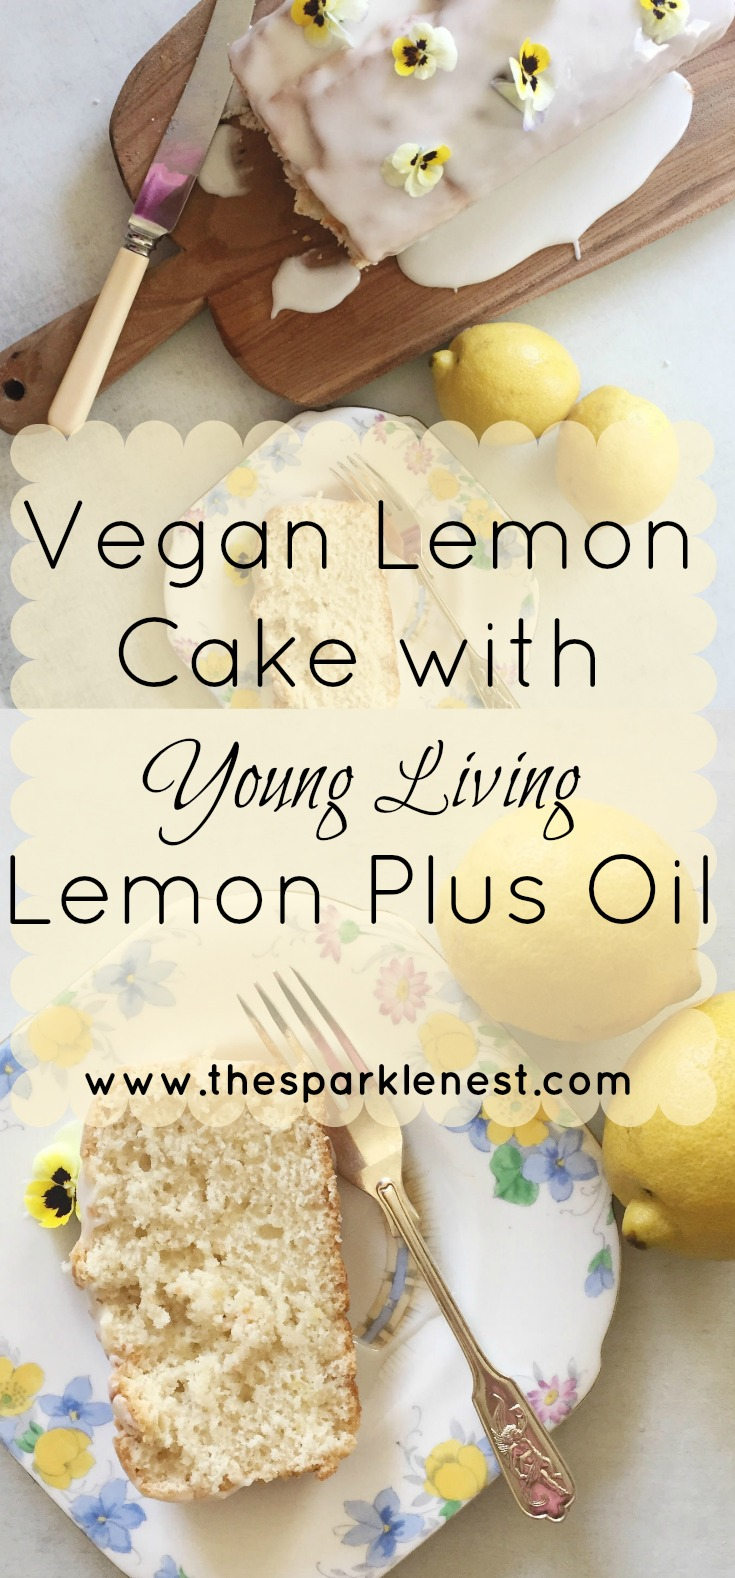 Using Lemon Juice In Vegan Cake Recipes